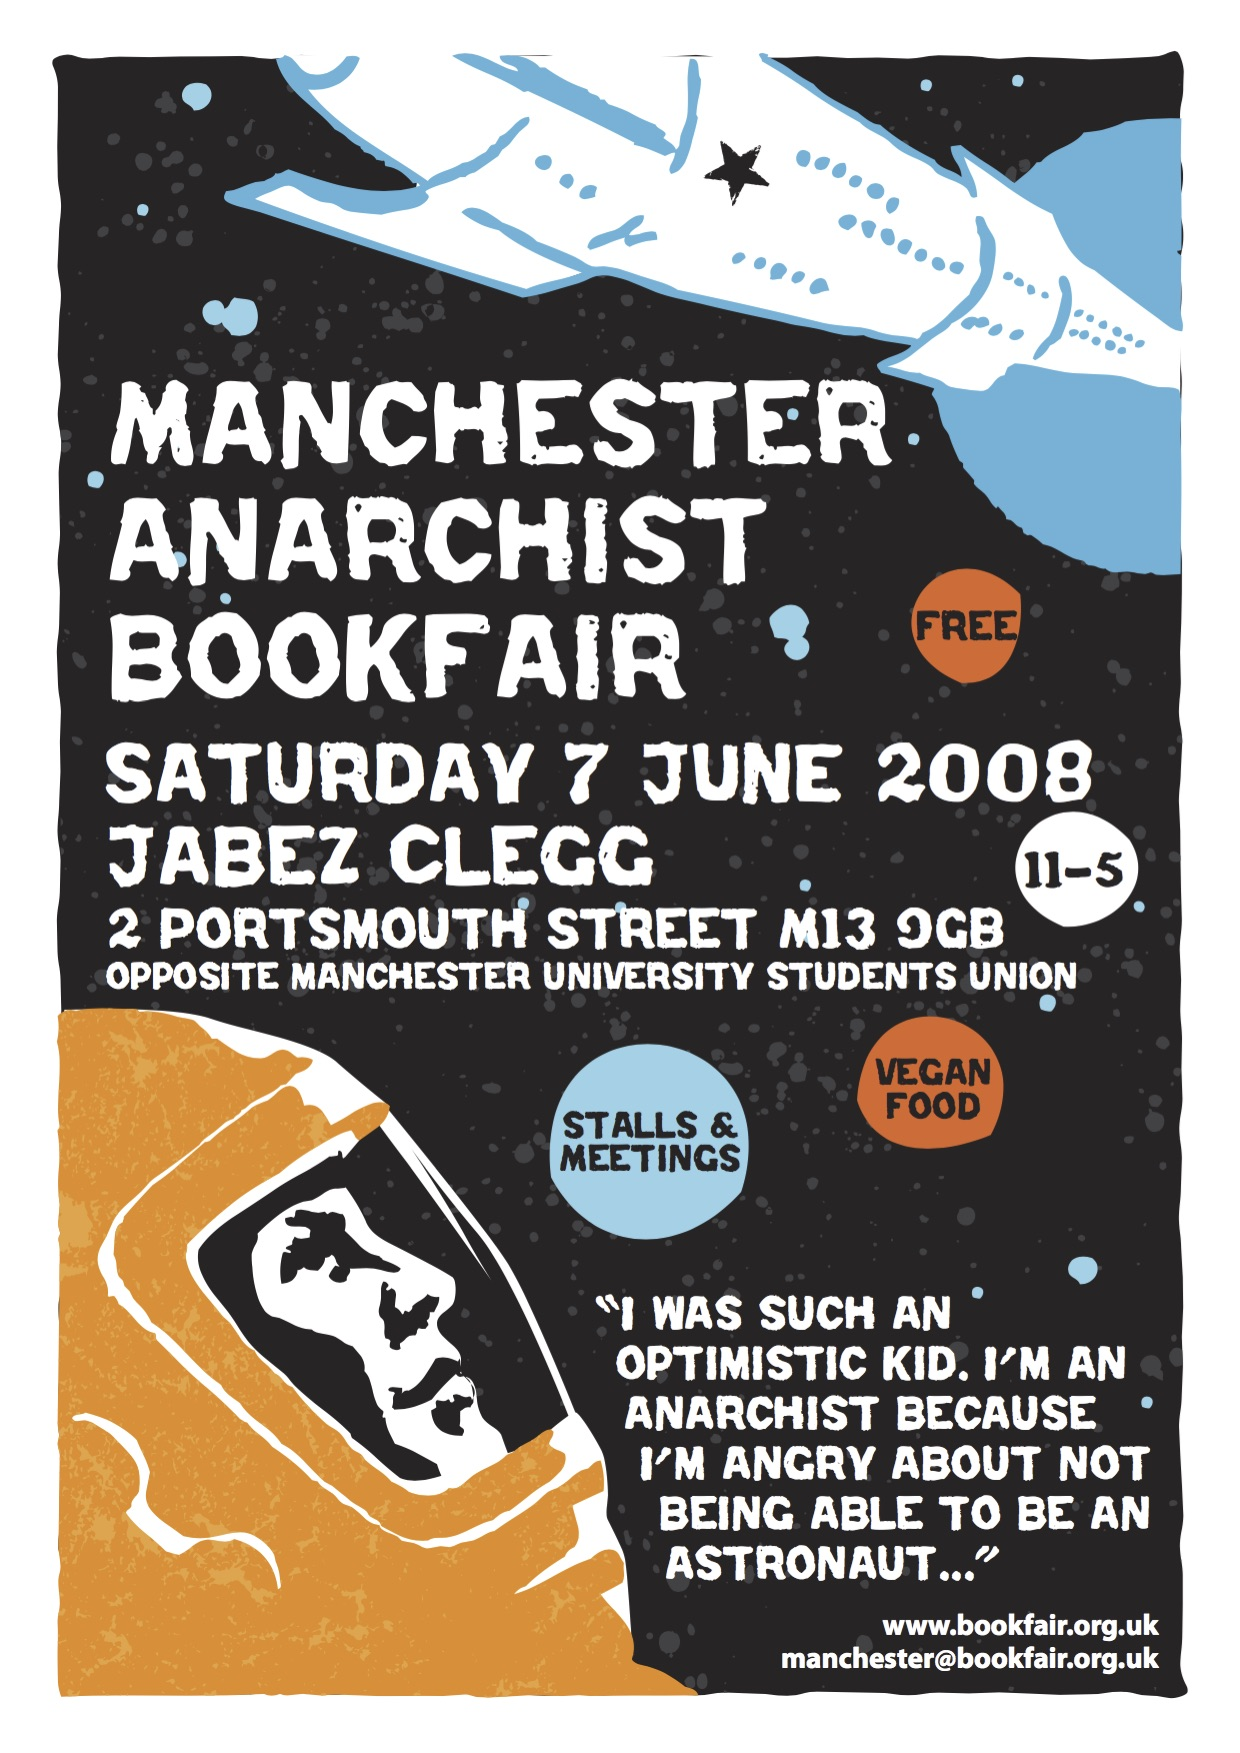 manc bookfair_0108_2